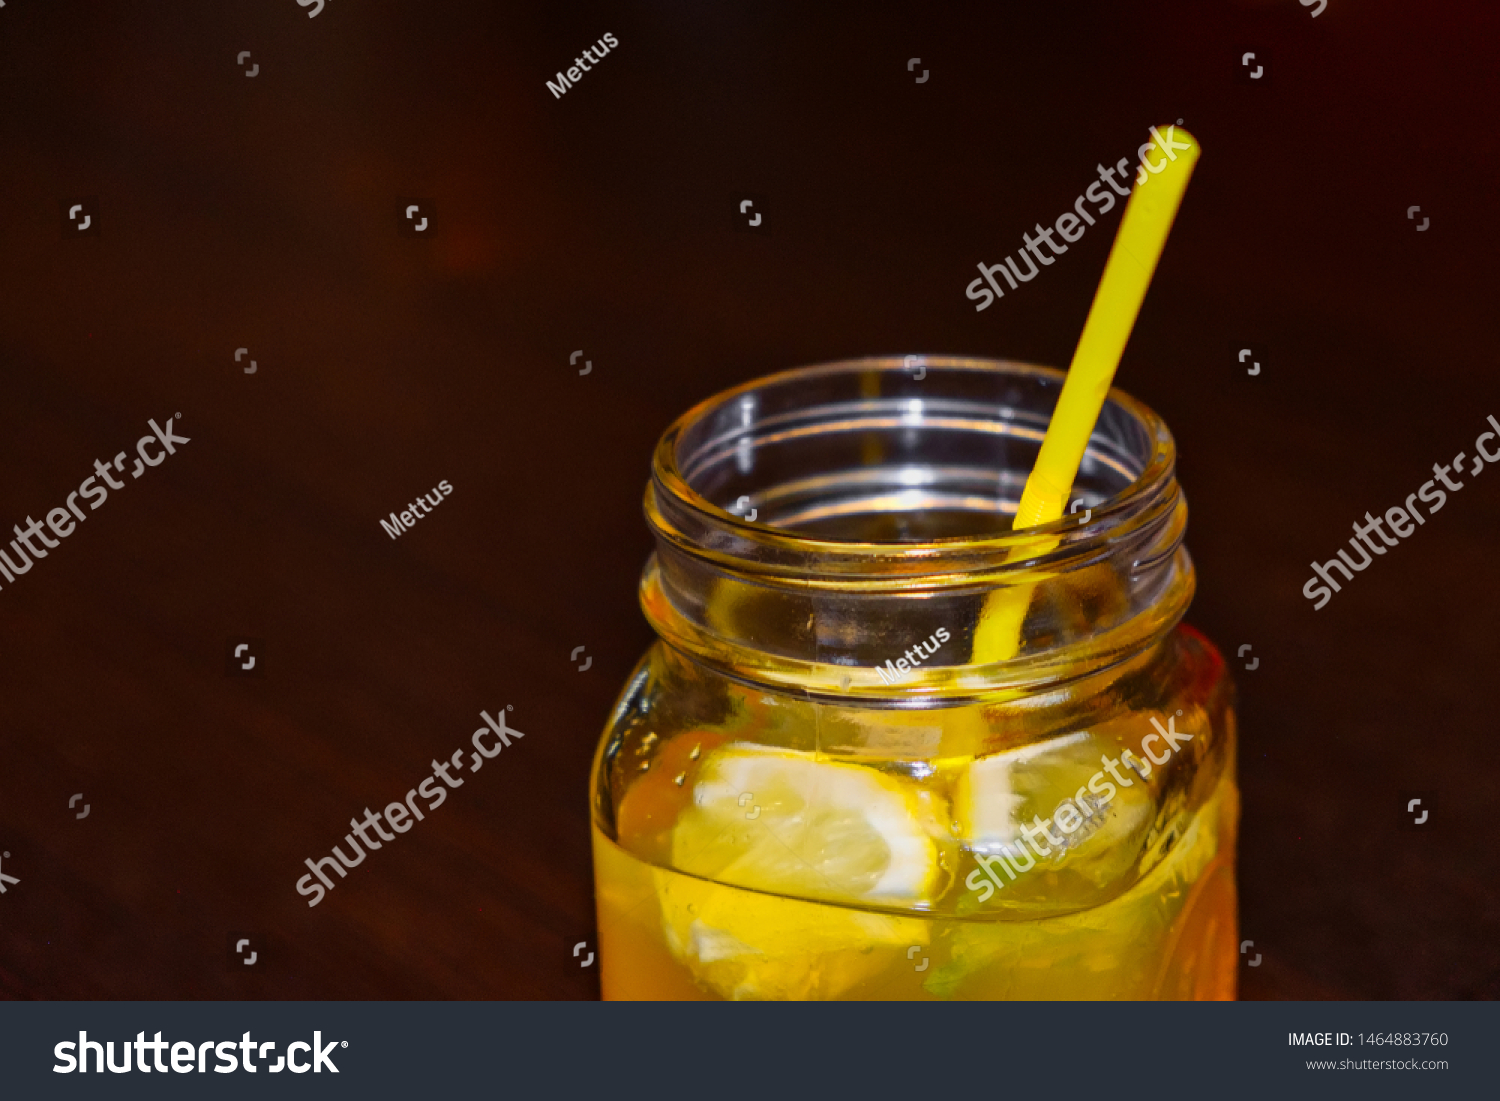 stock-photo-jar-of-lemonade-on-the-table